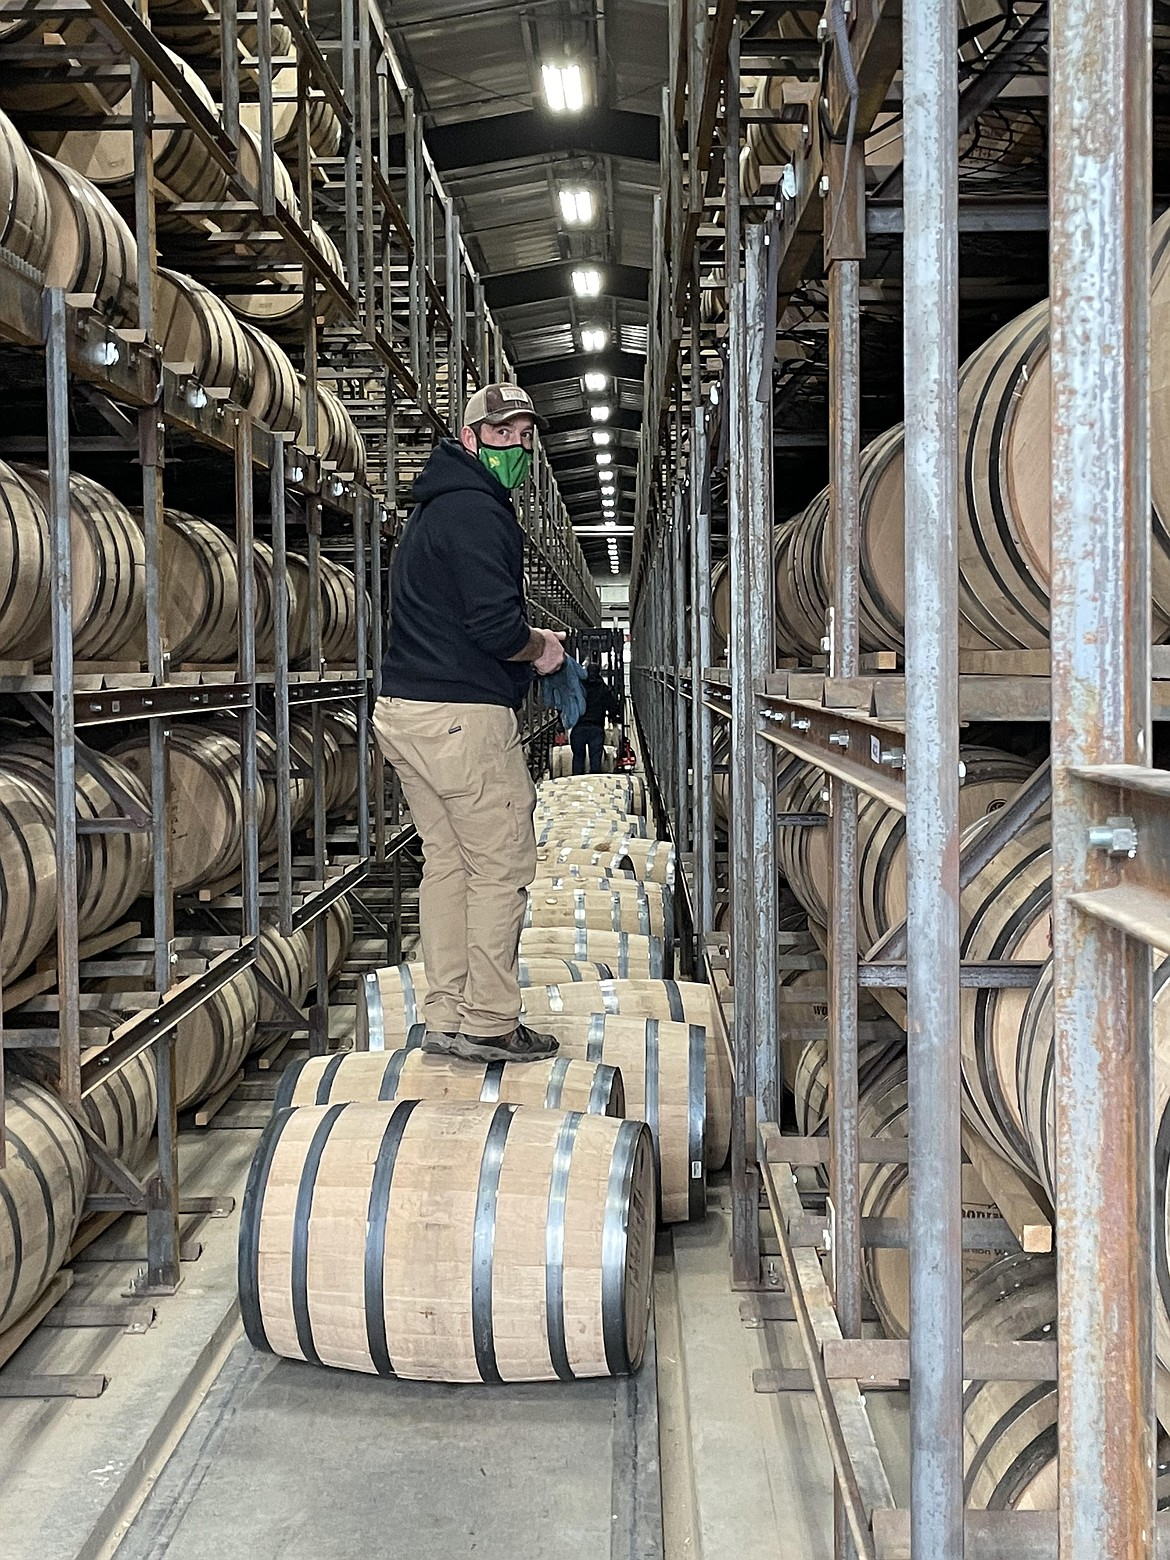 A Woodinville Whiskey Co. warehouse worker stands on a whiskey barrel.